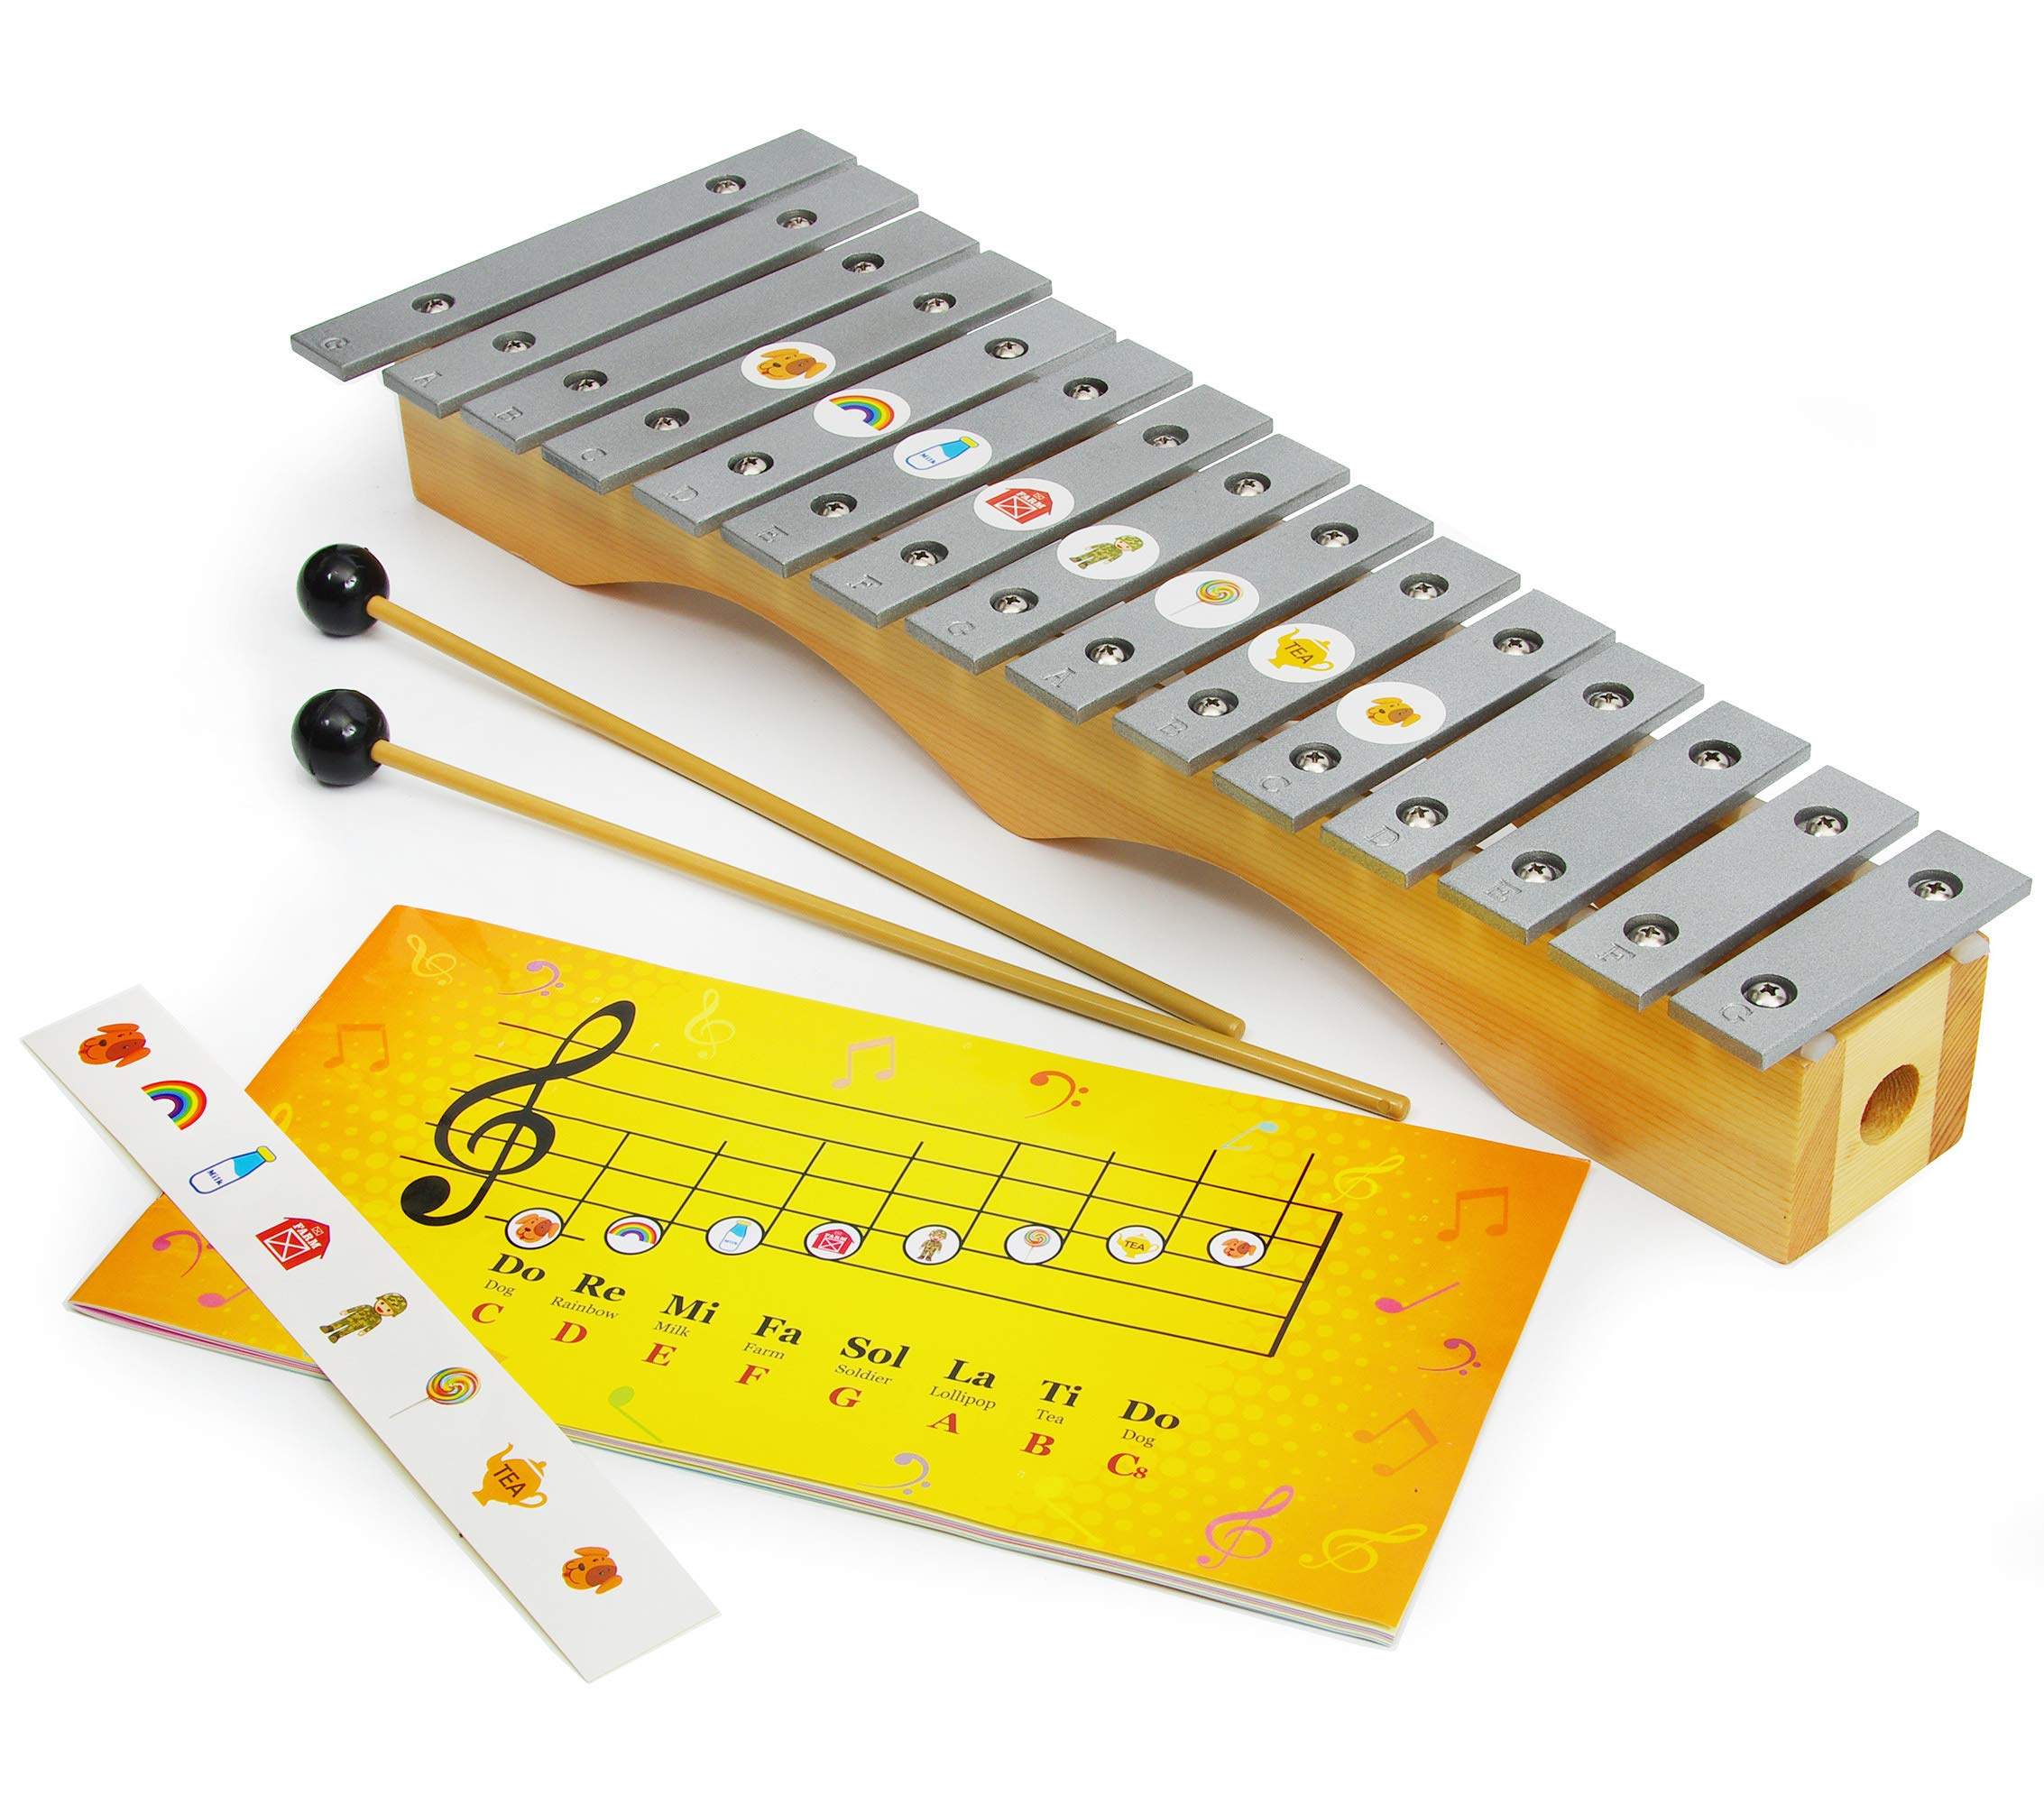 Glockenspiel Xylophone 15 notes - Kids Sheet Music Book - 34 Easy Play Songs Included by inTemenos